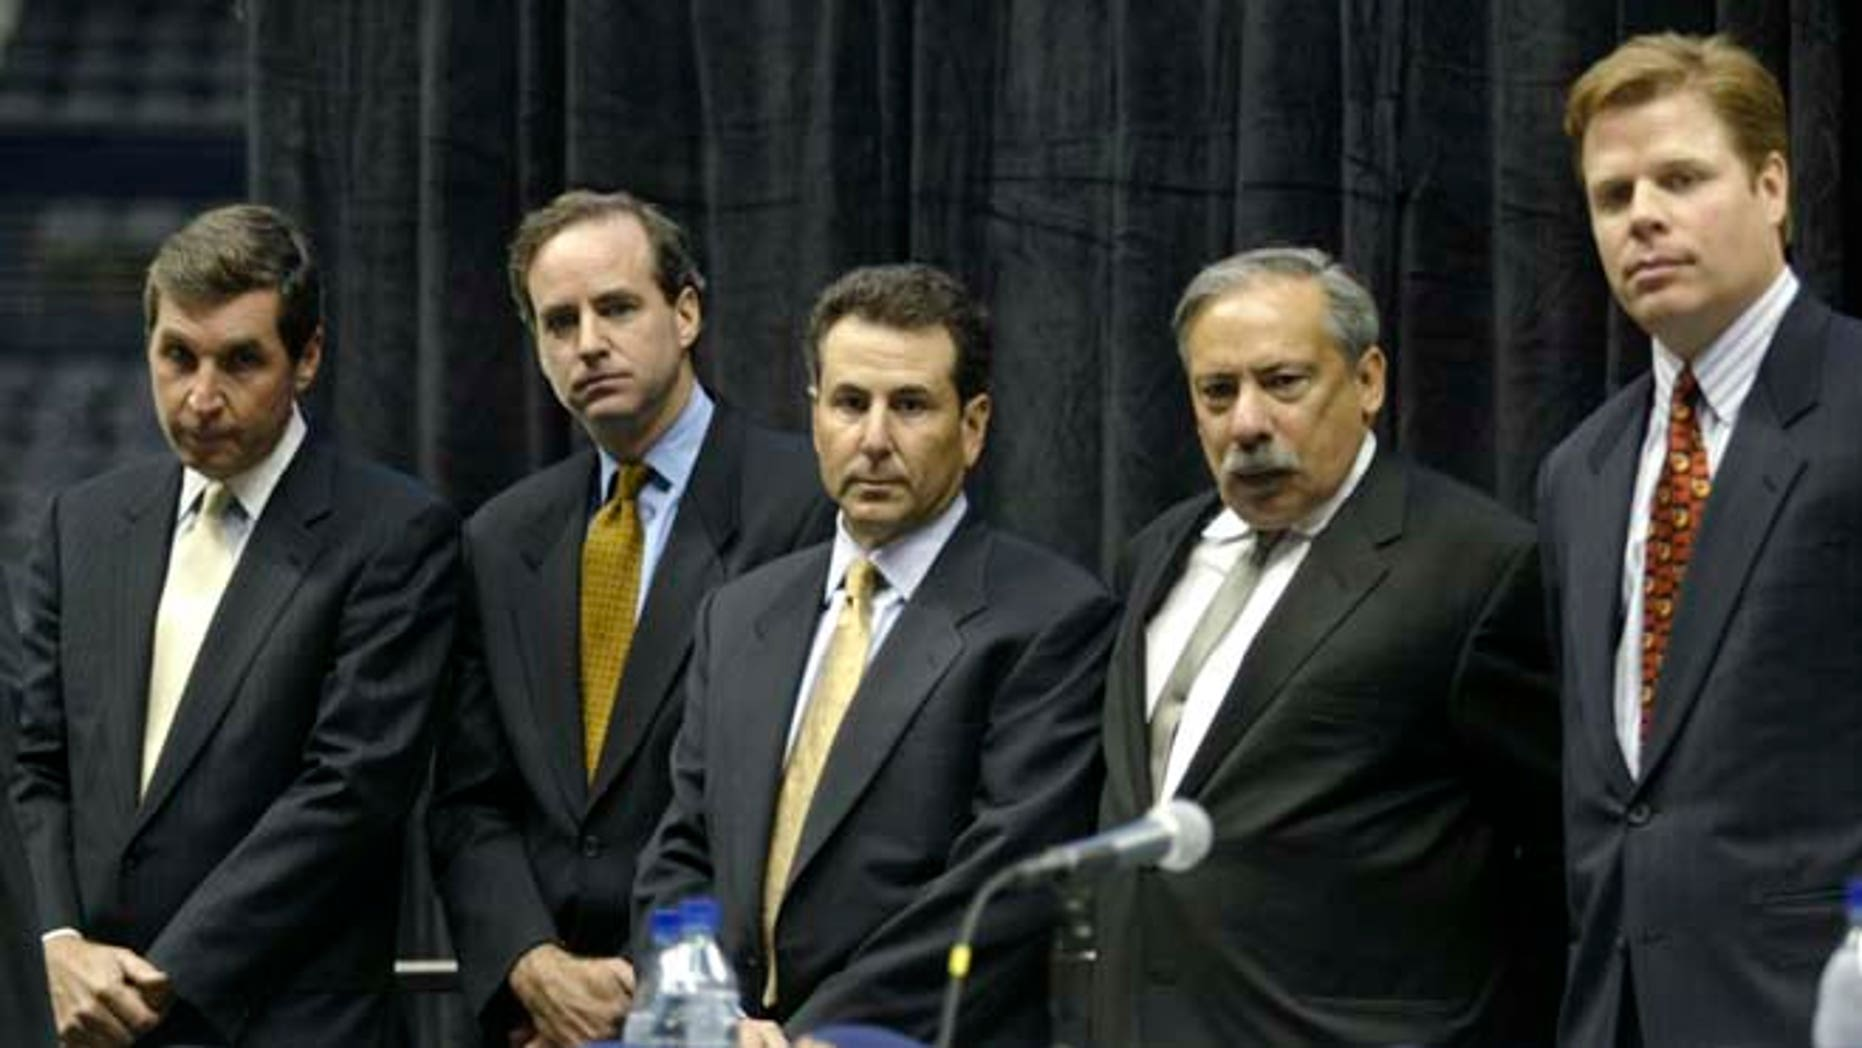 September 16, 2003: Primary owners, from left to right, Steve Belkin, J. Michael Gearon Jr., Bruce Levenson, Ed Peskowitz, and John Rutherford Seydel II, who have acquired the Atlanta Hawks NBA team and the Atlanta Thrashers NHL team, and operating rights to the Philips Arena, listen to a questionduring a press conference in Atlanta. (Reuters)